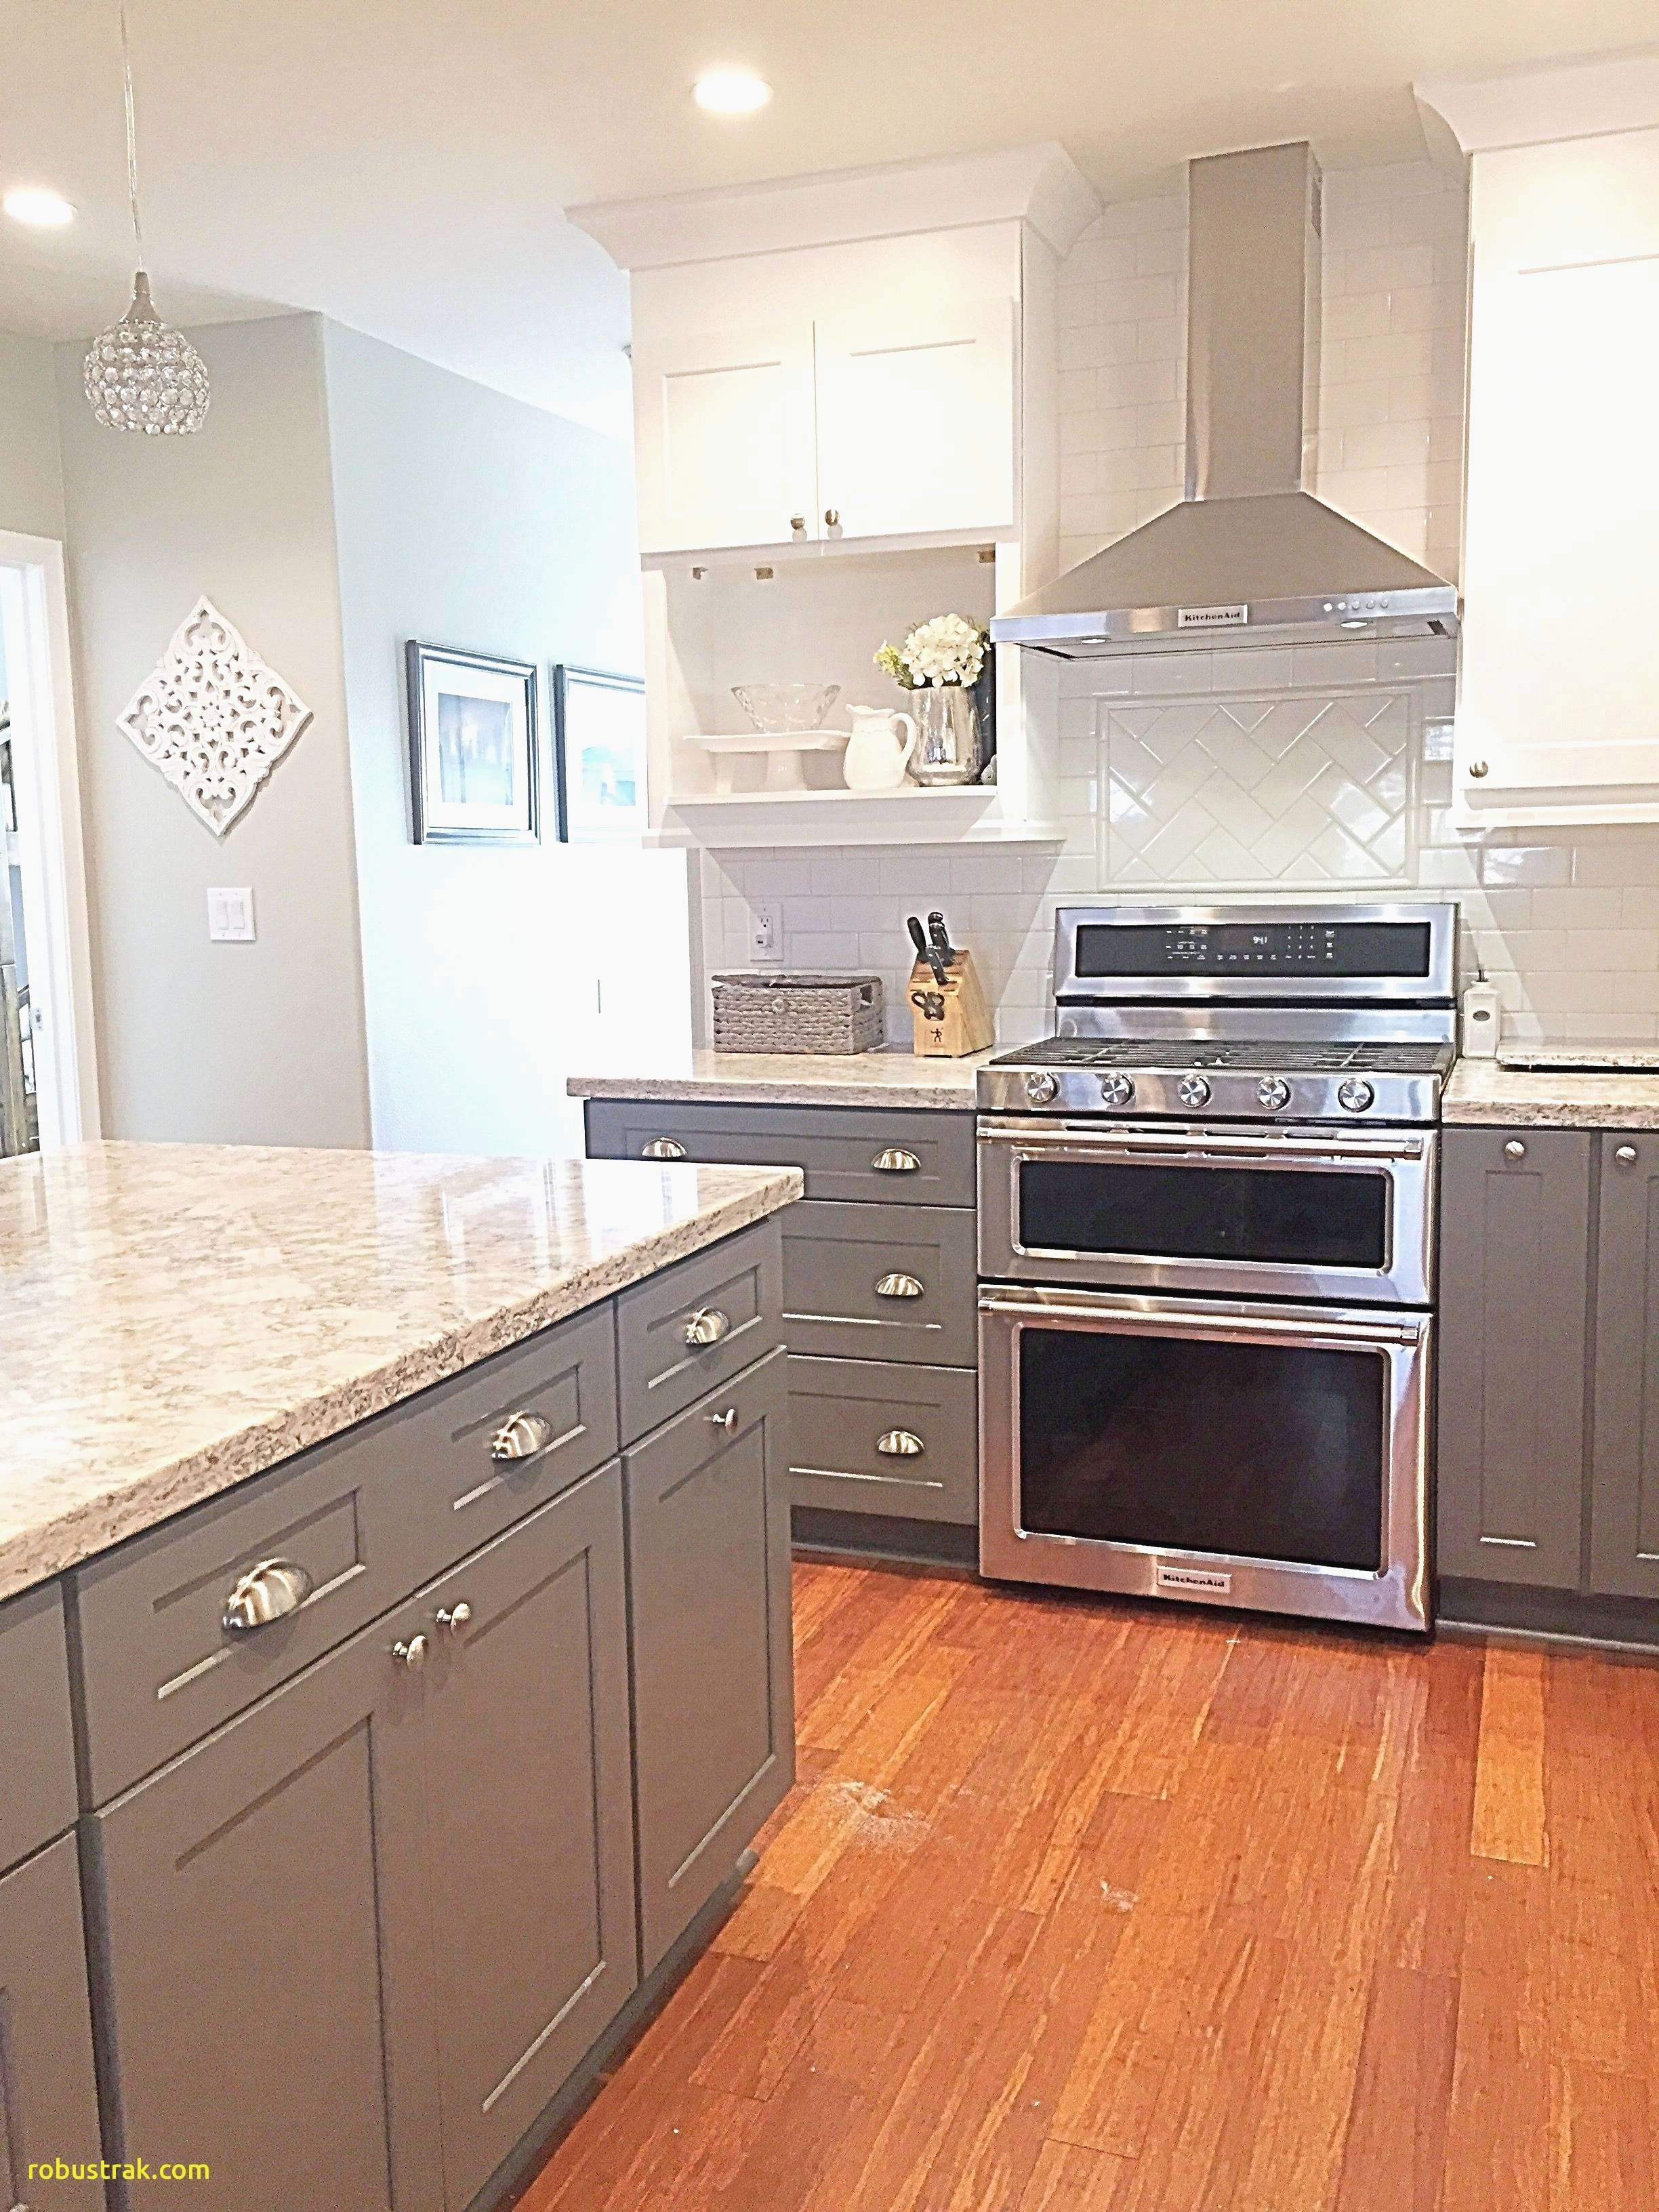 Bruce Engineered Hardwood Floors Of 18 Inspirational Hardwood Flooring Stock Dizpos Com Intended for Hardwood Flooring Awesome the Most Kitchen Cabinet Wood Colors Stock Home Ideas Pictures